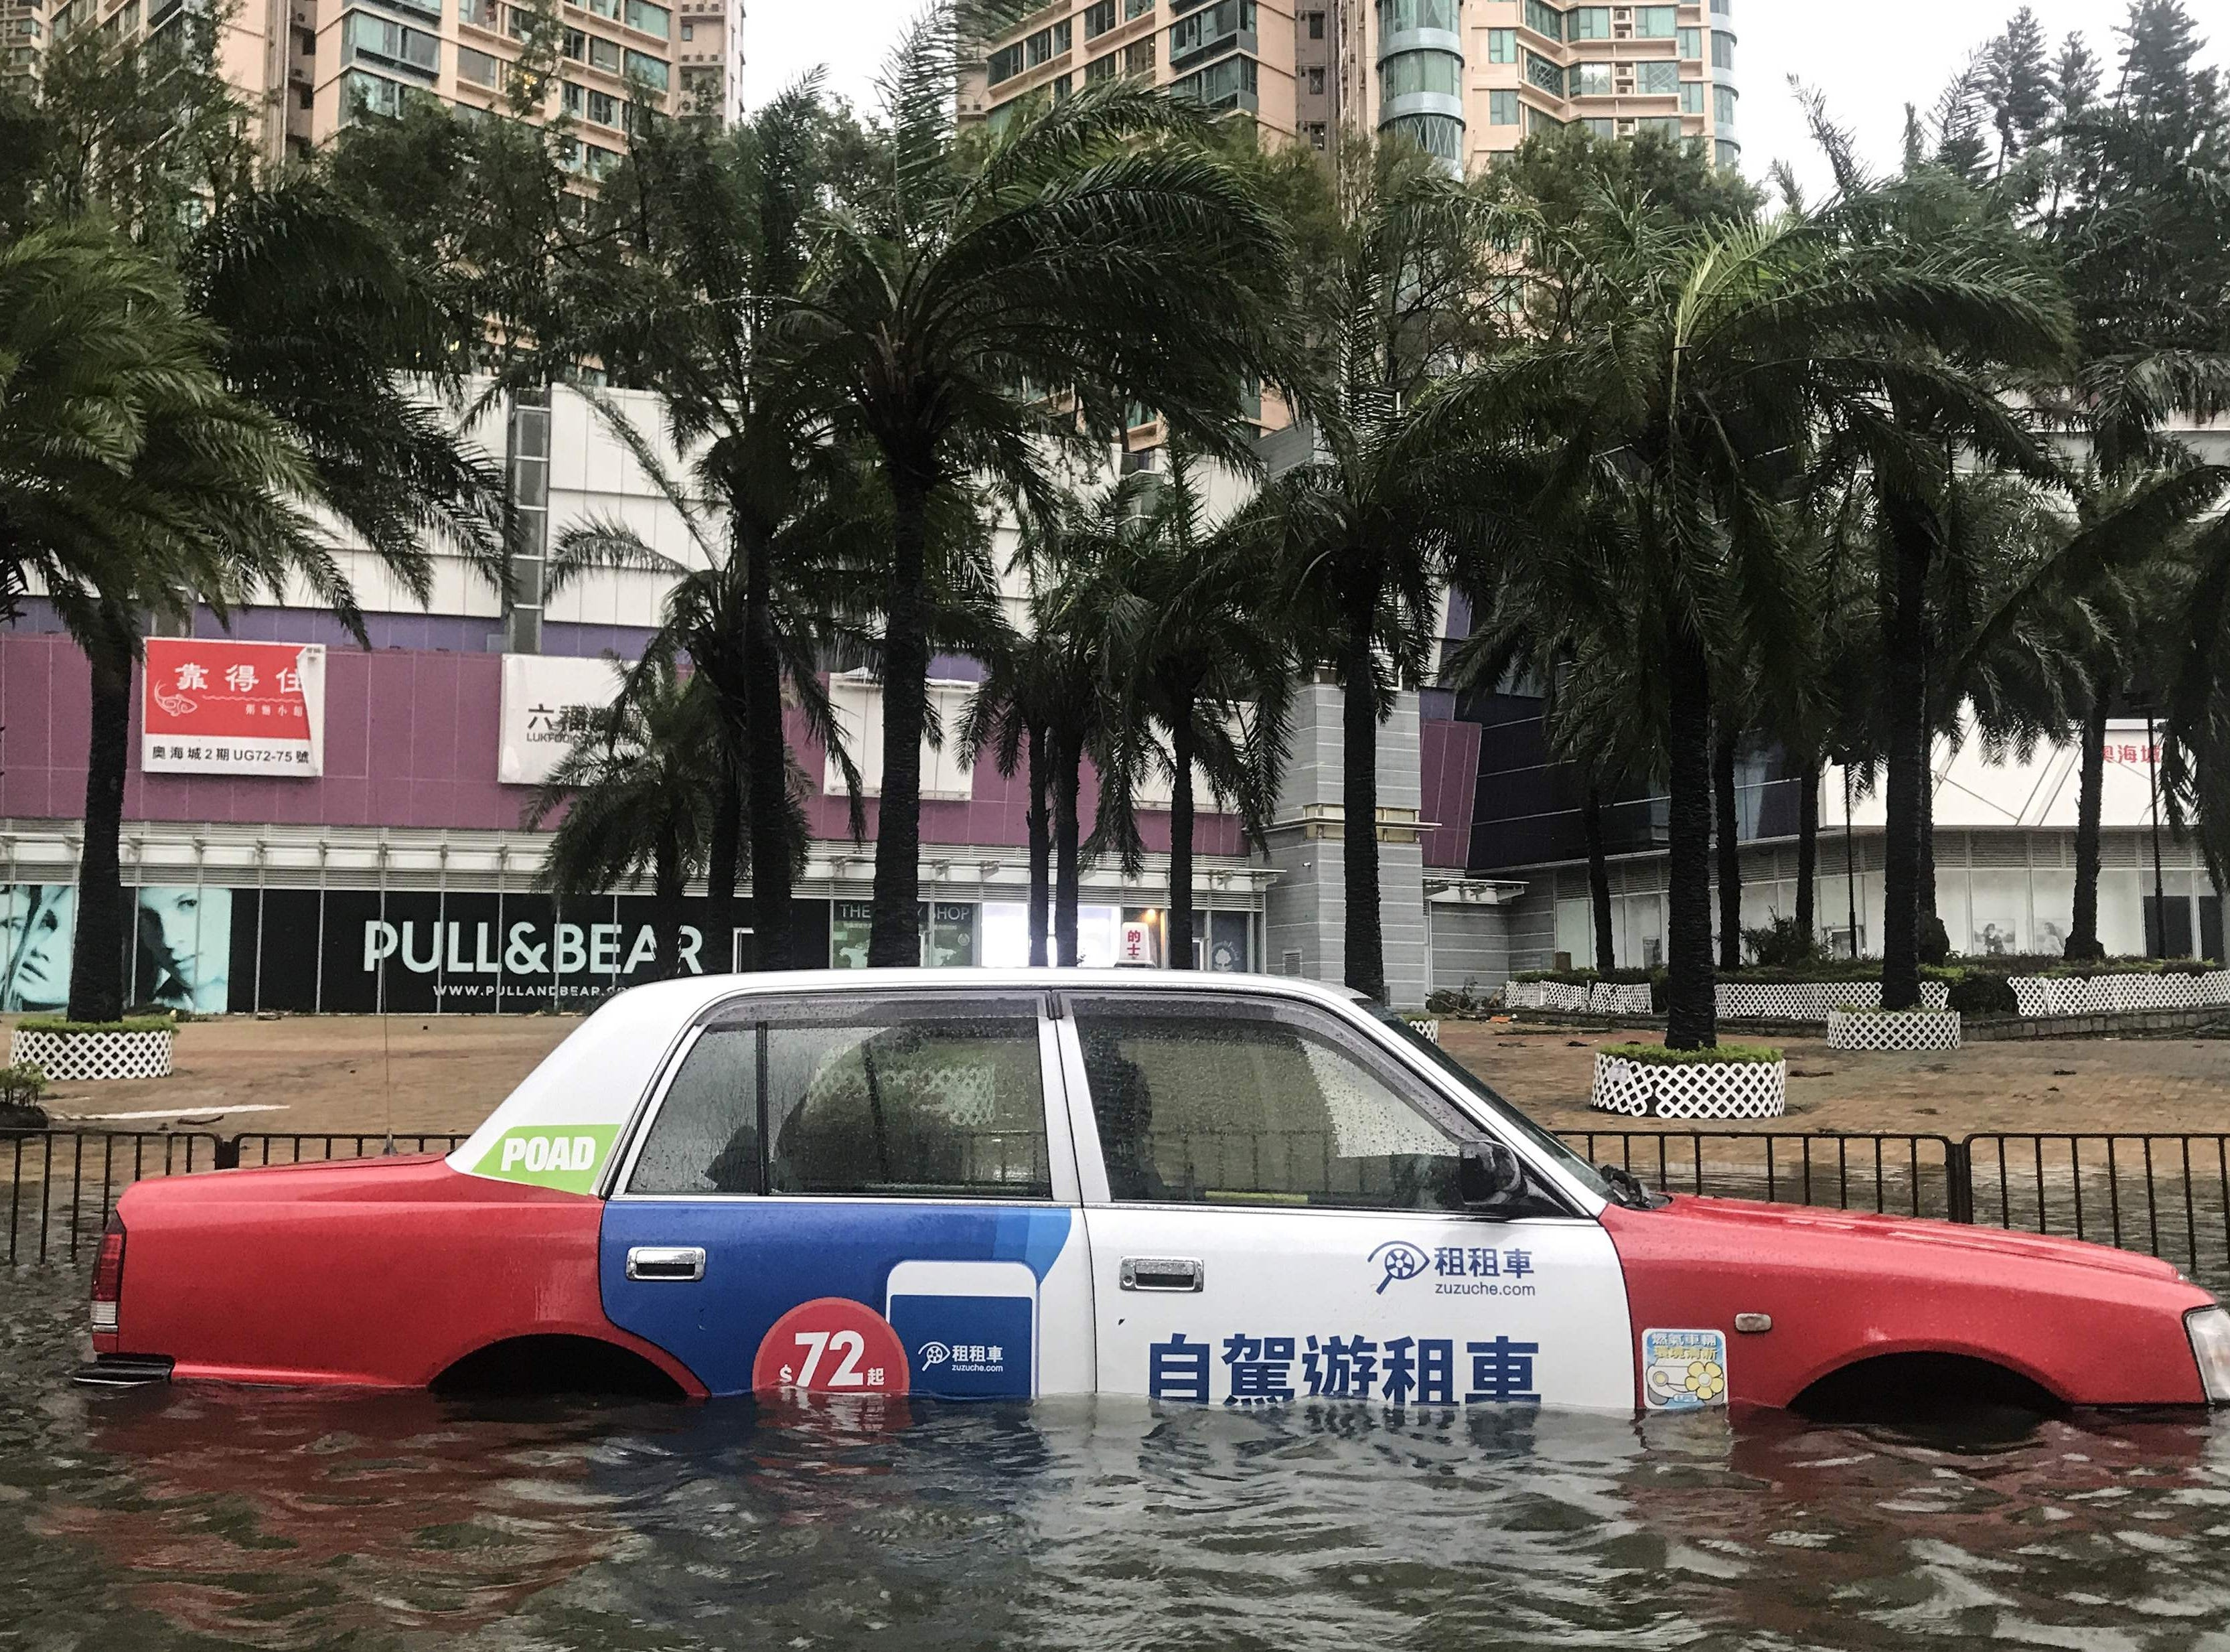 A taxi is left abandoned after breaking down in floodwaters during Super Typhoon Mangkhut in Hong Kong on Sept. 16, 2018.